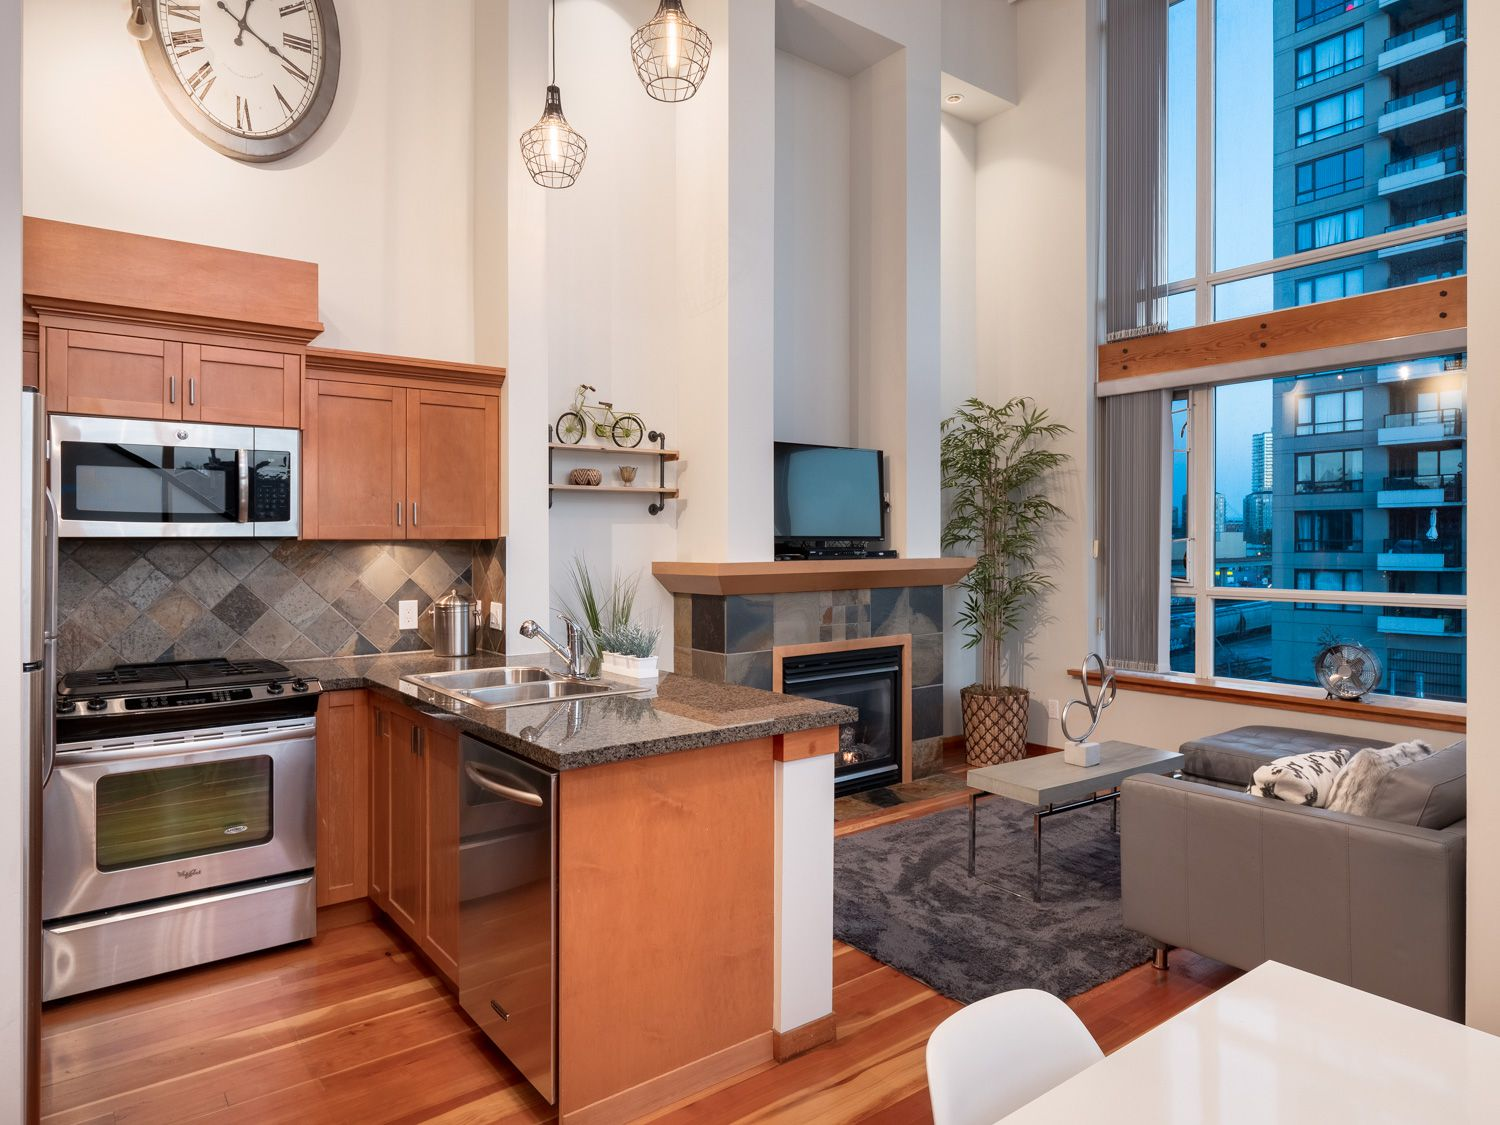 Main Photo: 329 10 RENAISSANCE SQUARE in New Westminster: Quay Condo for sale : MLS®# R2330423